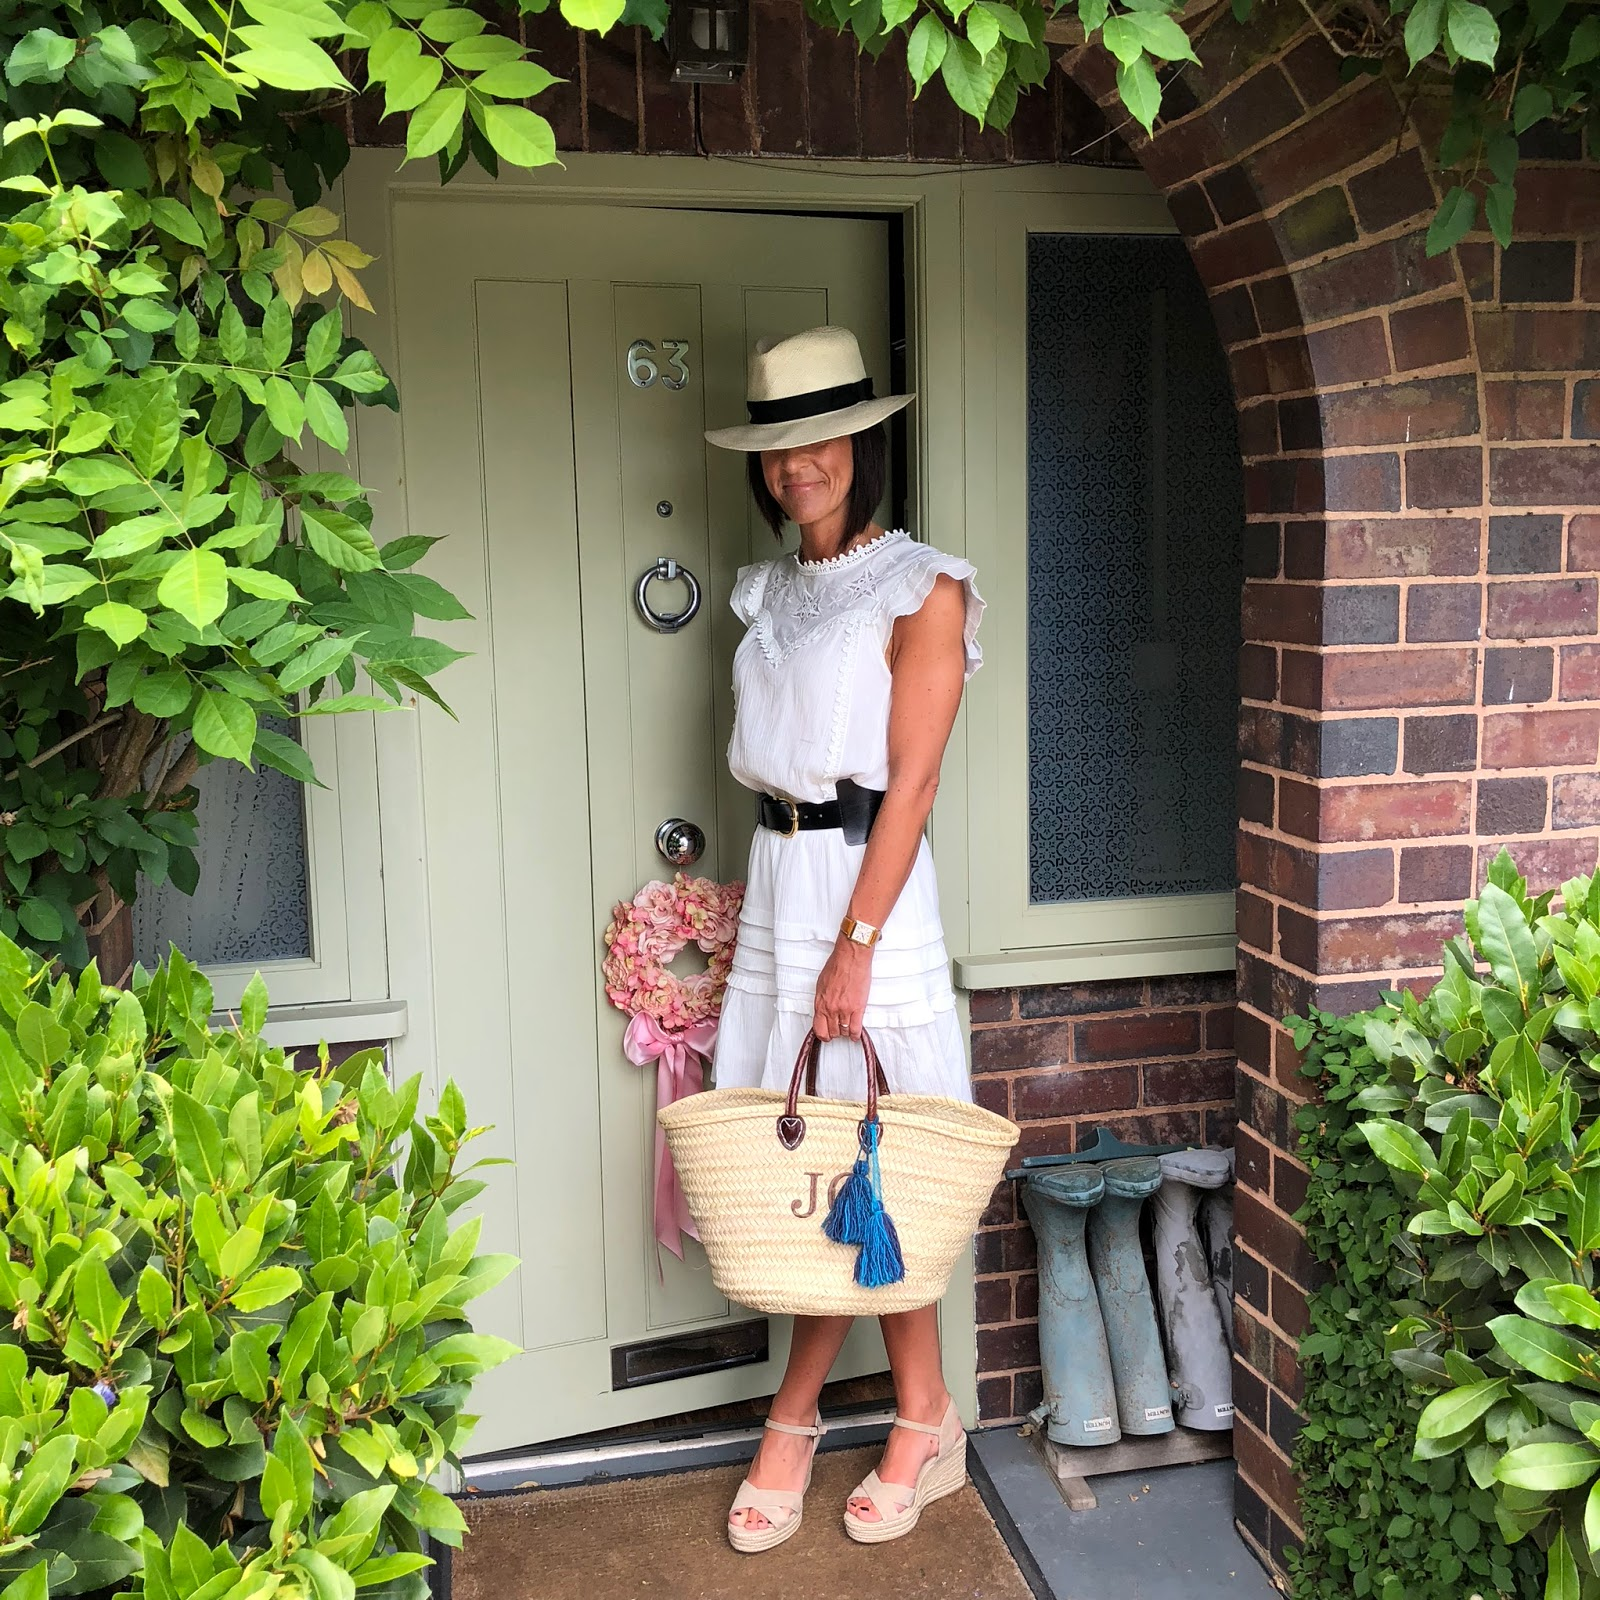 my midlife fashion chlobo solar plexus chakra necklace, hush portobello dress, initially london covent garden medium basket shopper, chlobo mini small ball double angel wing bracelet, chlobo cute charm puffed heart bracelet, and other stories waist buckle belt, marks and spencer handwoven panama hat, the white company suede espadrille sandals